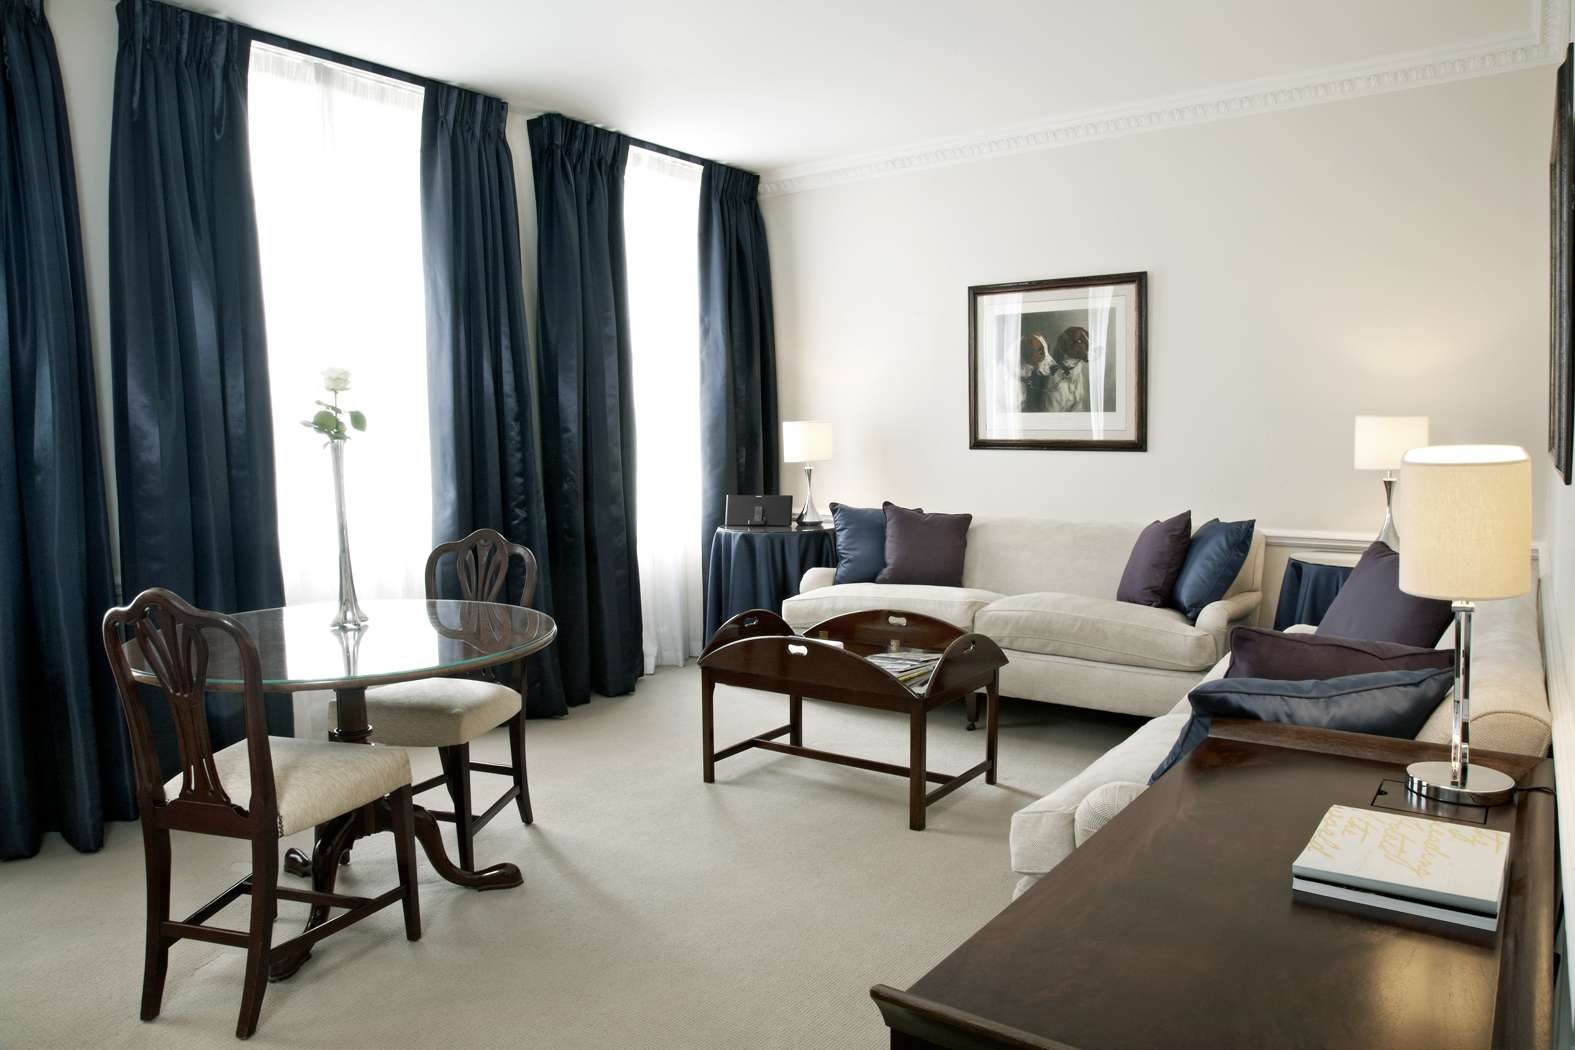 Deluxe One Bedroom Suite | 45 sqm